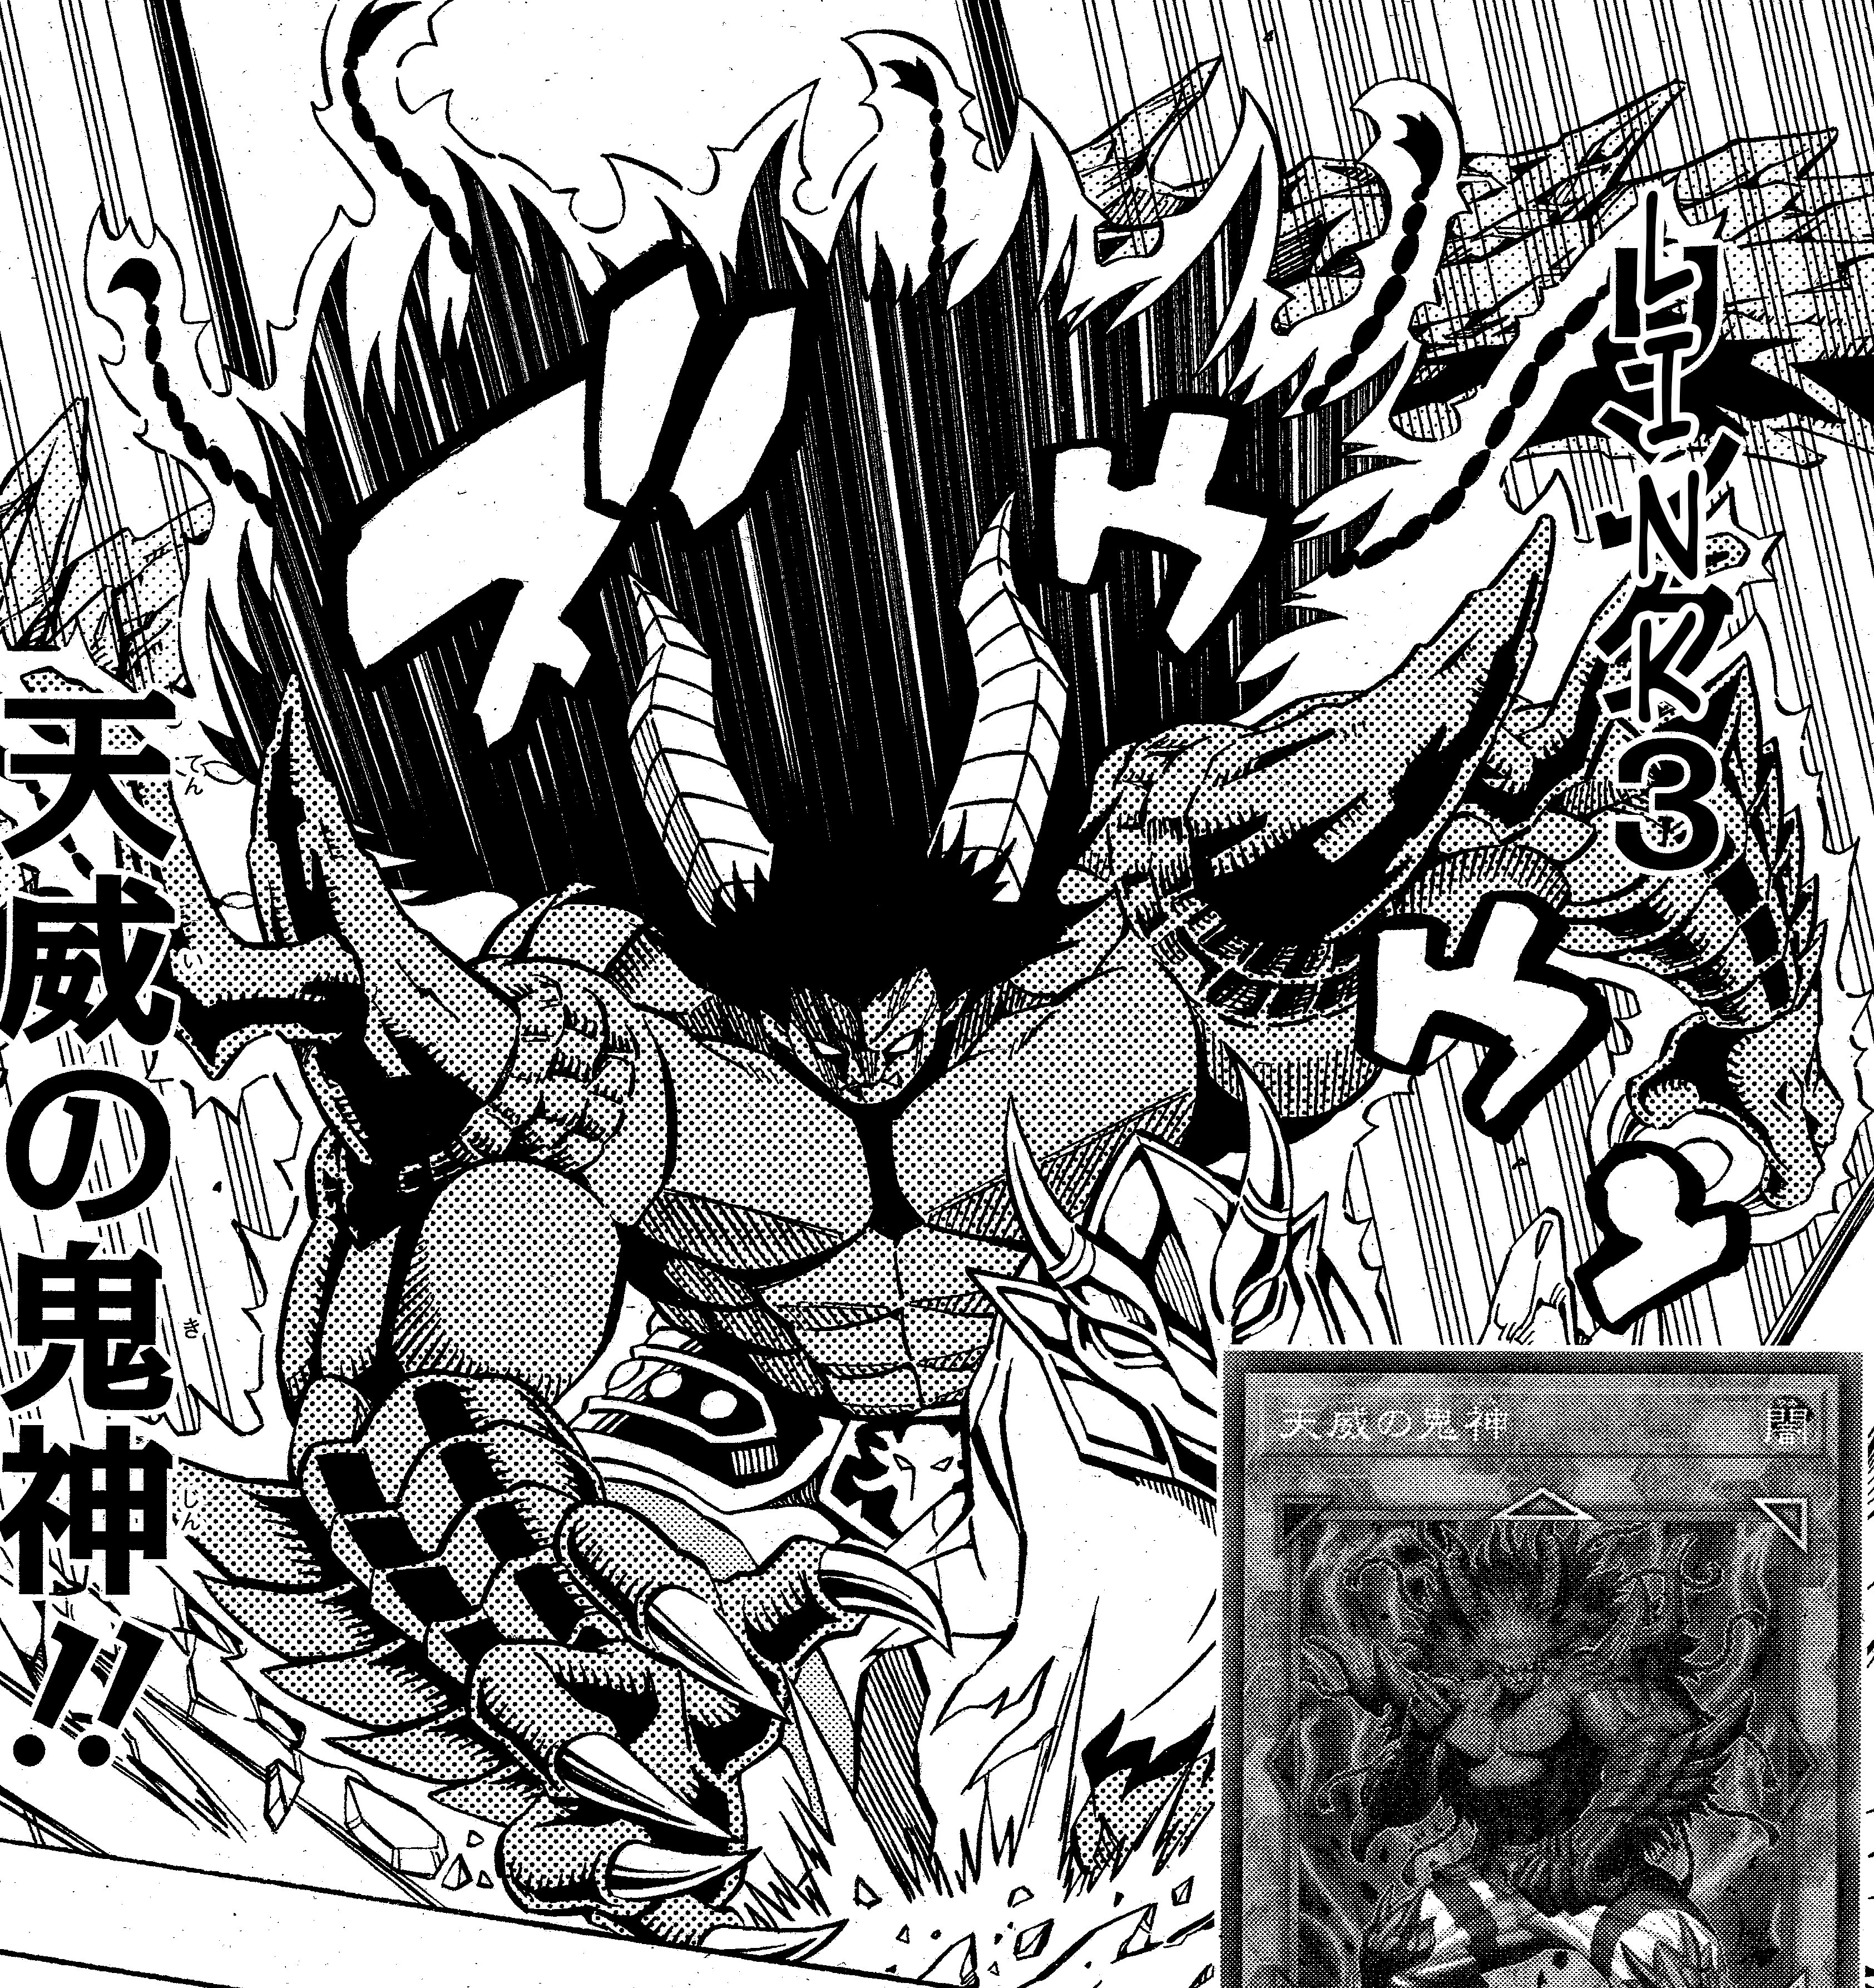 Berserker of the Tenyi (OCG Structures)